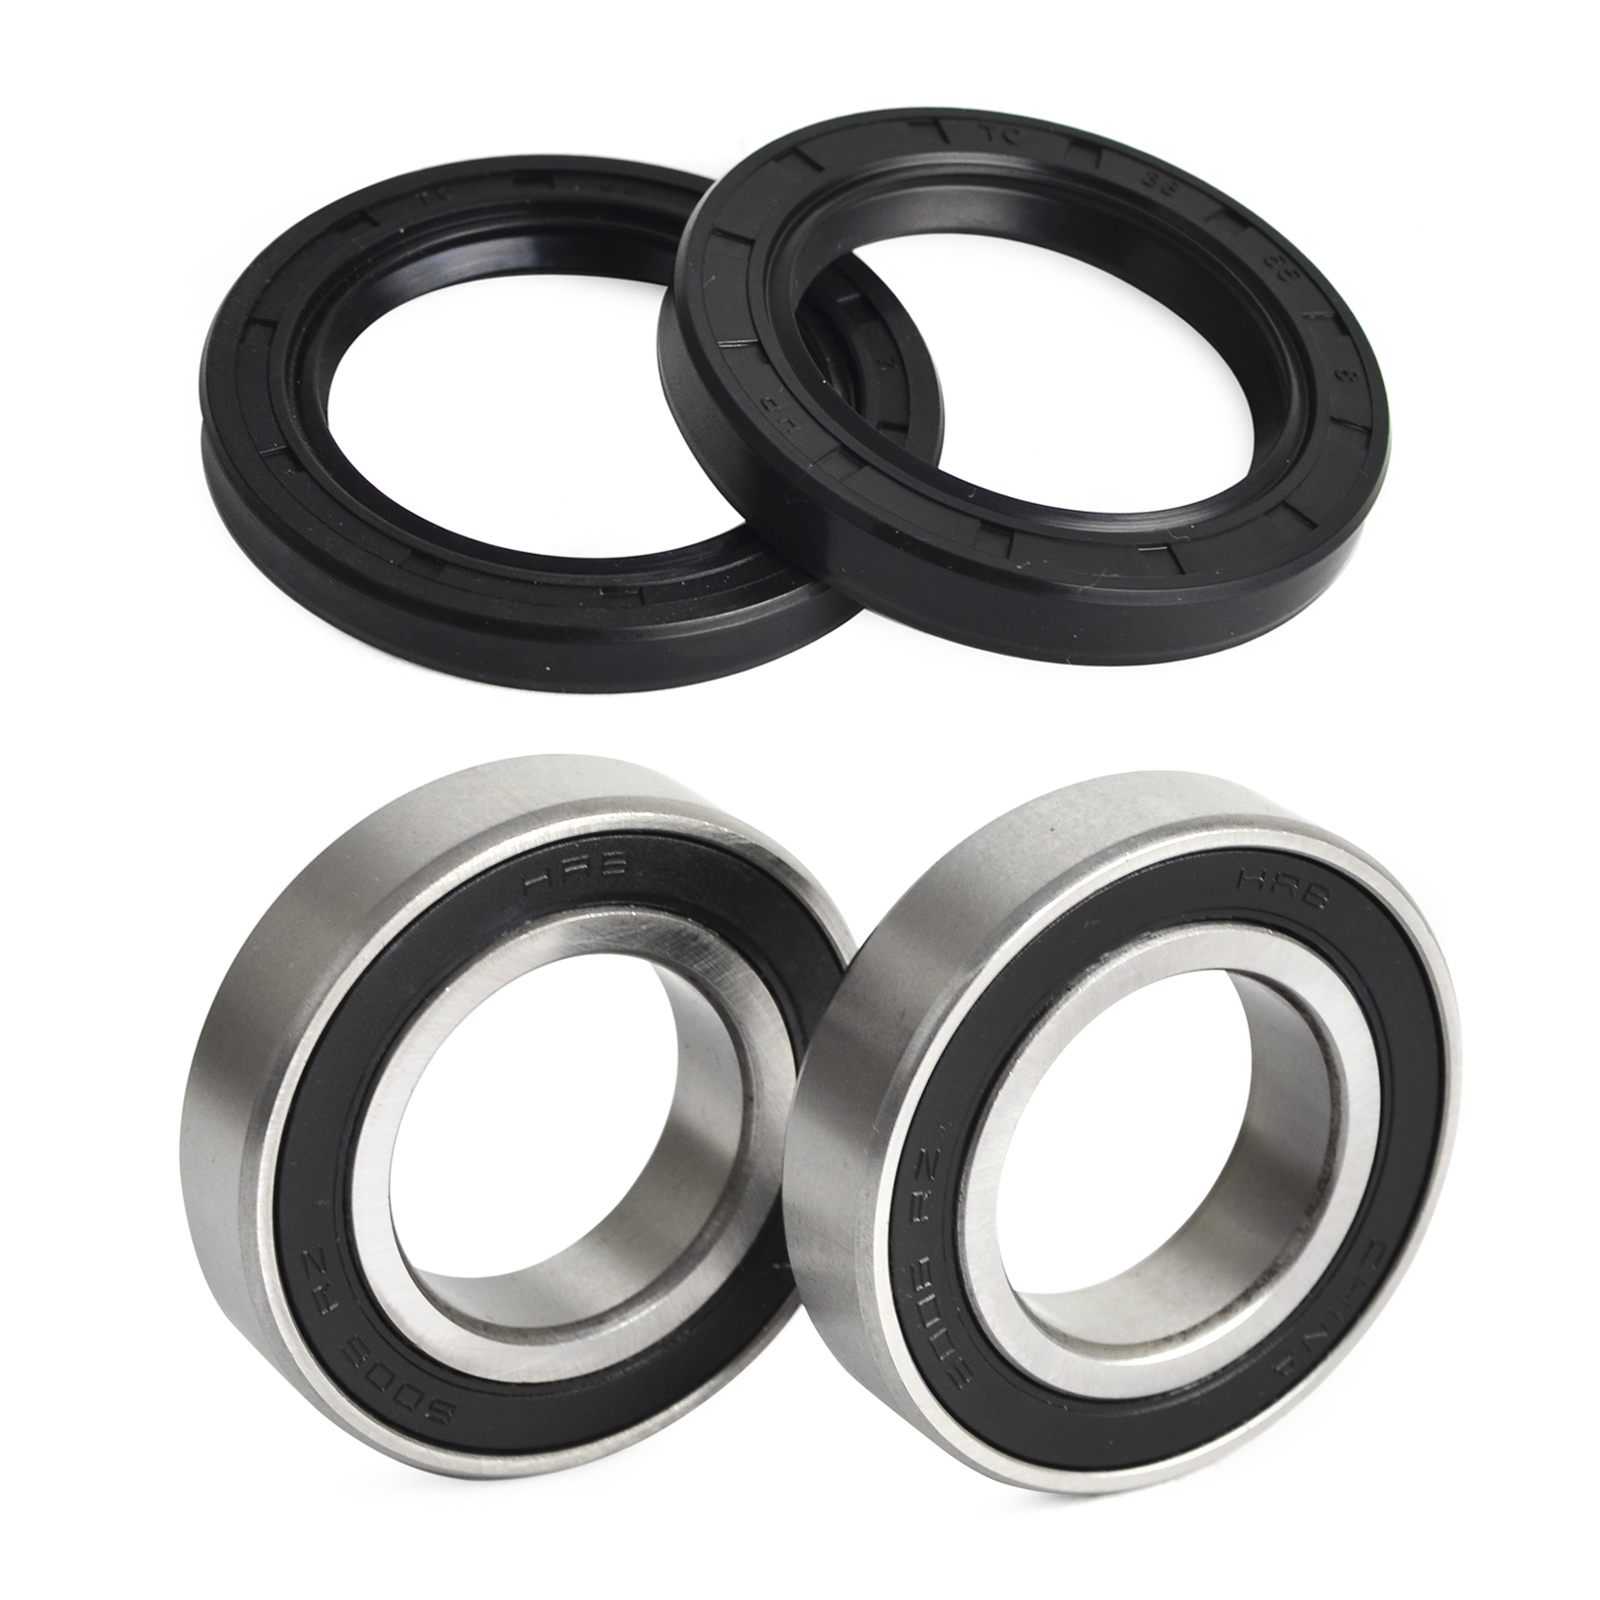 H2CNC Front Wheel Bearing Seats & Oil Seal Kit For <font><b>UTV</b></font> 800 700 <font><b>500</b></font> 400 <font><b>Hisun</b></font> Massimo Supermach Bennche image